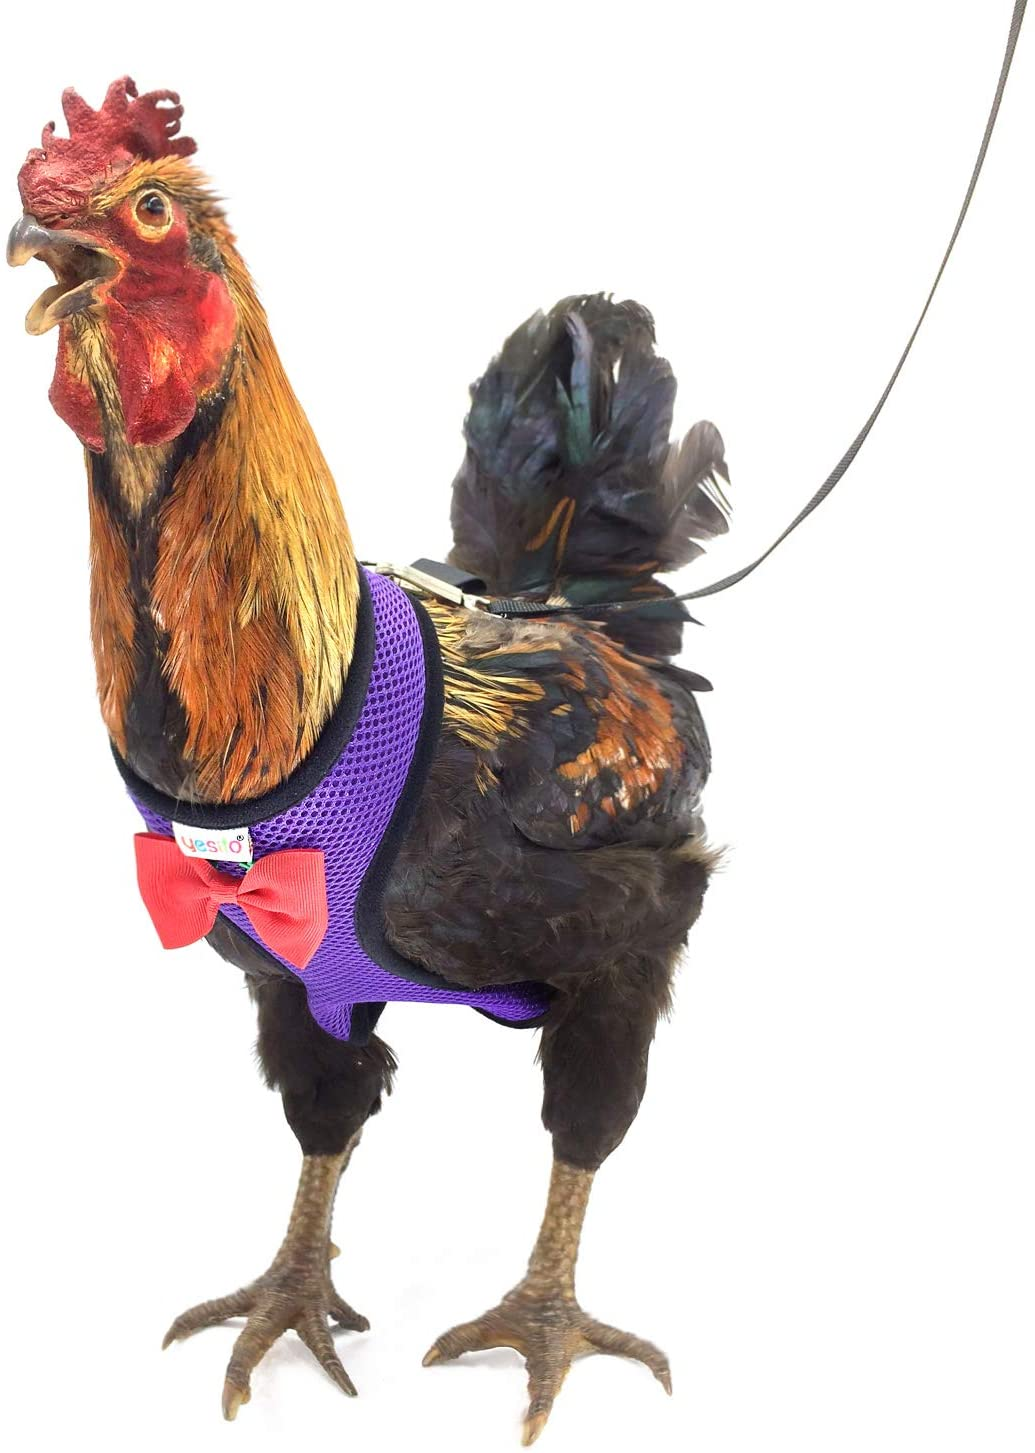 Yesito Chicken Harness Hen Size with 6ft Matching Leash – Adjustable, Resilient, Comfortable, Breathable, Large Size, Suitable for Chicken Weighing About 6.6 Pound,Purple